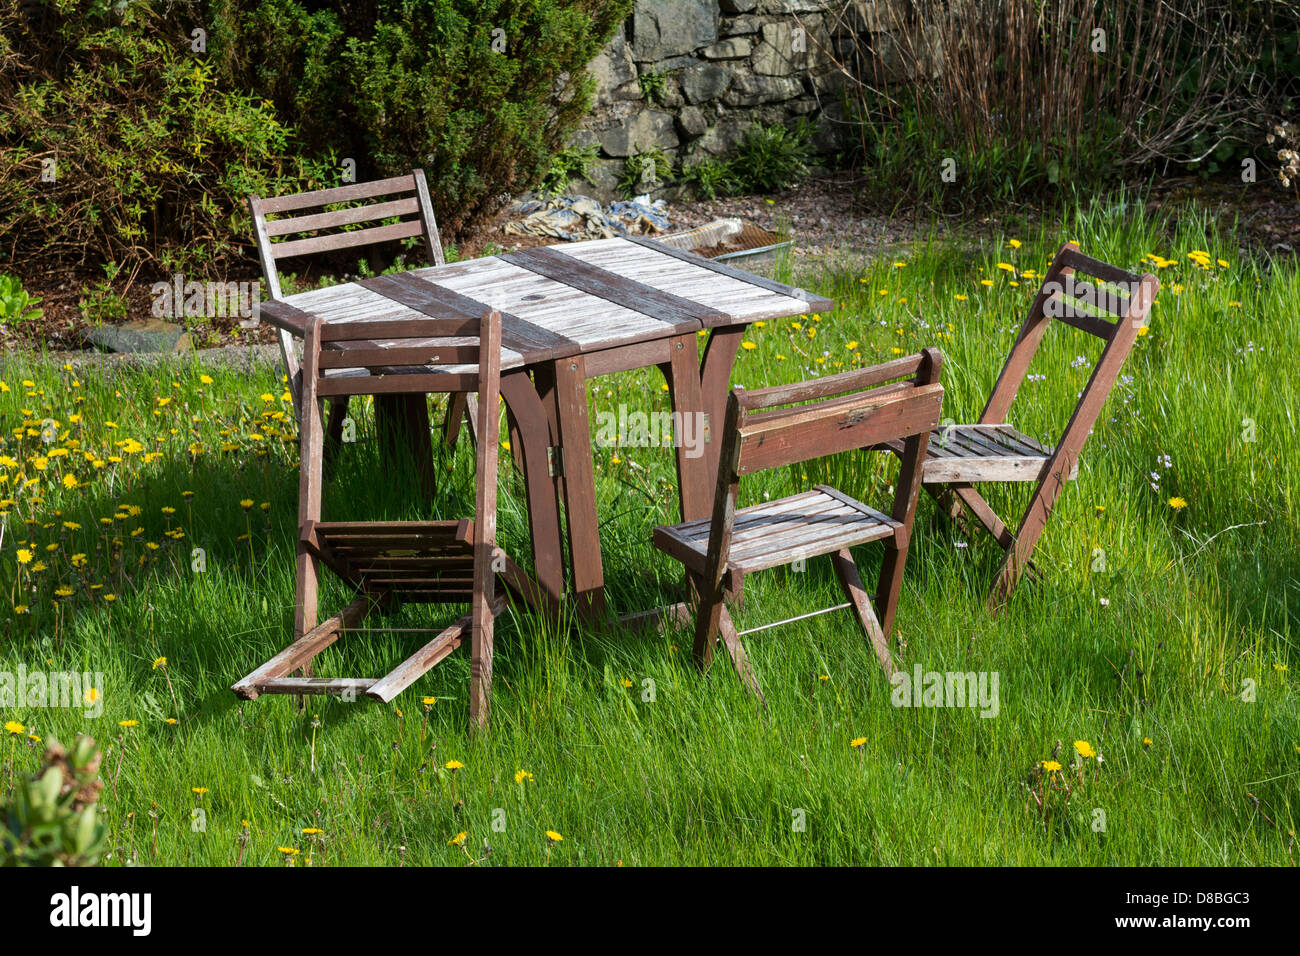 Overgrown lawn with unused garden chairs and tables, - Stock Image